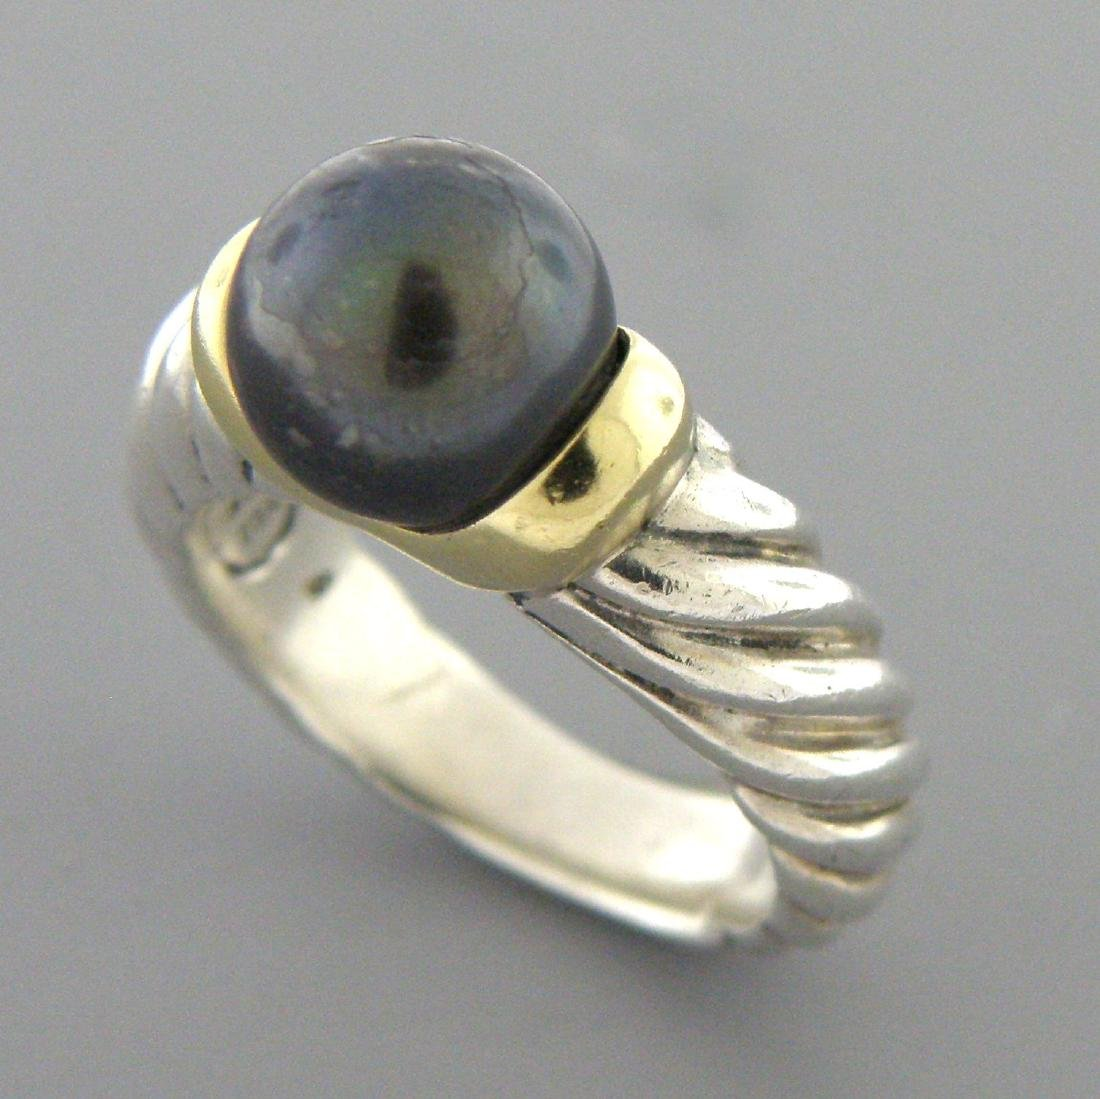 DAVID YURMAN 18K GOLD STERLING SILVER BLACK PEARL RING